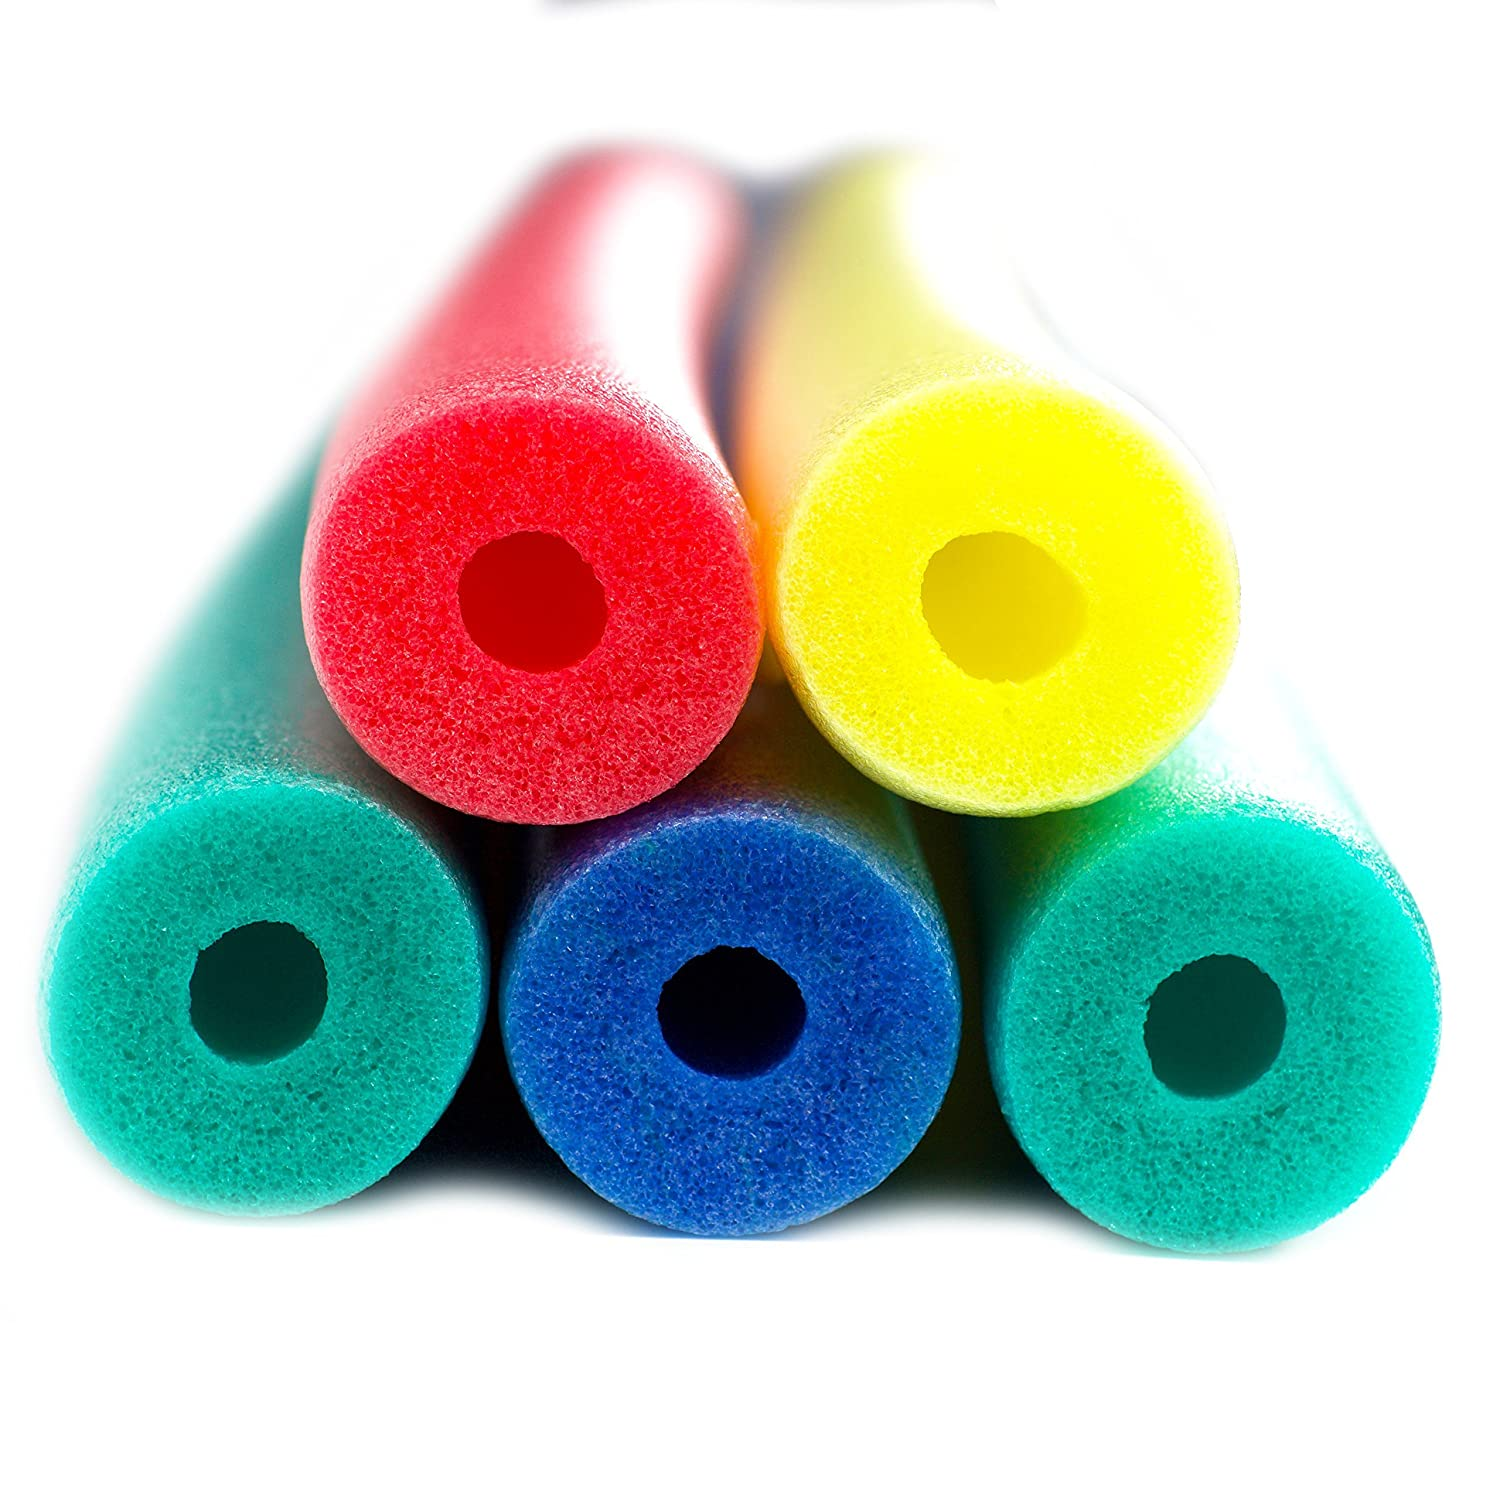 Amazon 5 pack of 52 inch flexible colorful foam pool noodles